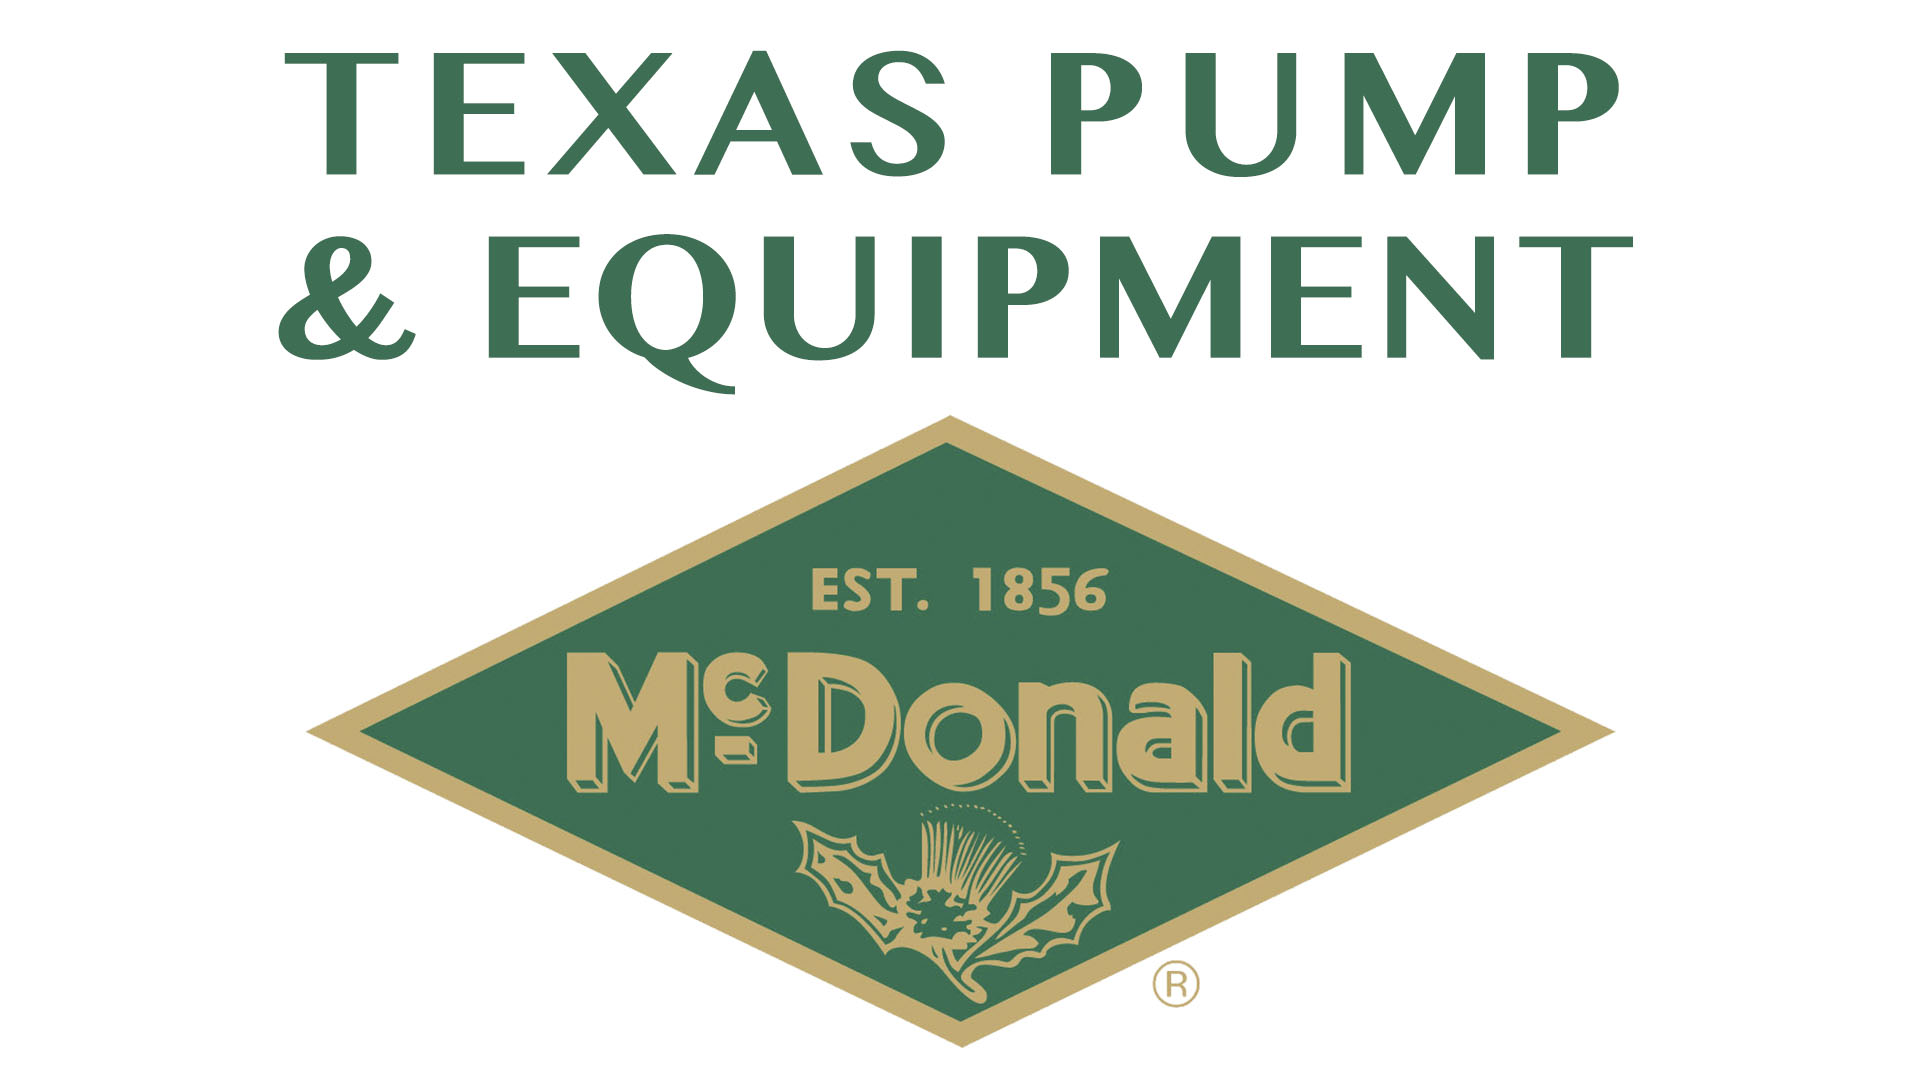 Texas-Pump-&-Equipment-1920x1080_1527867034988.jpg